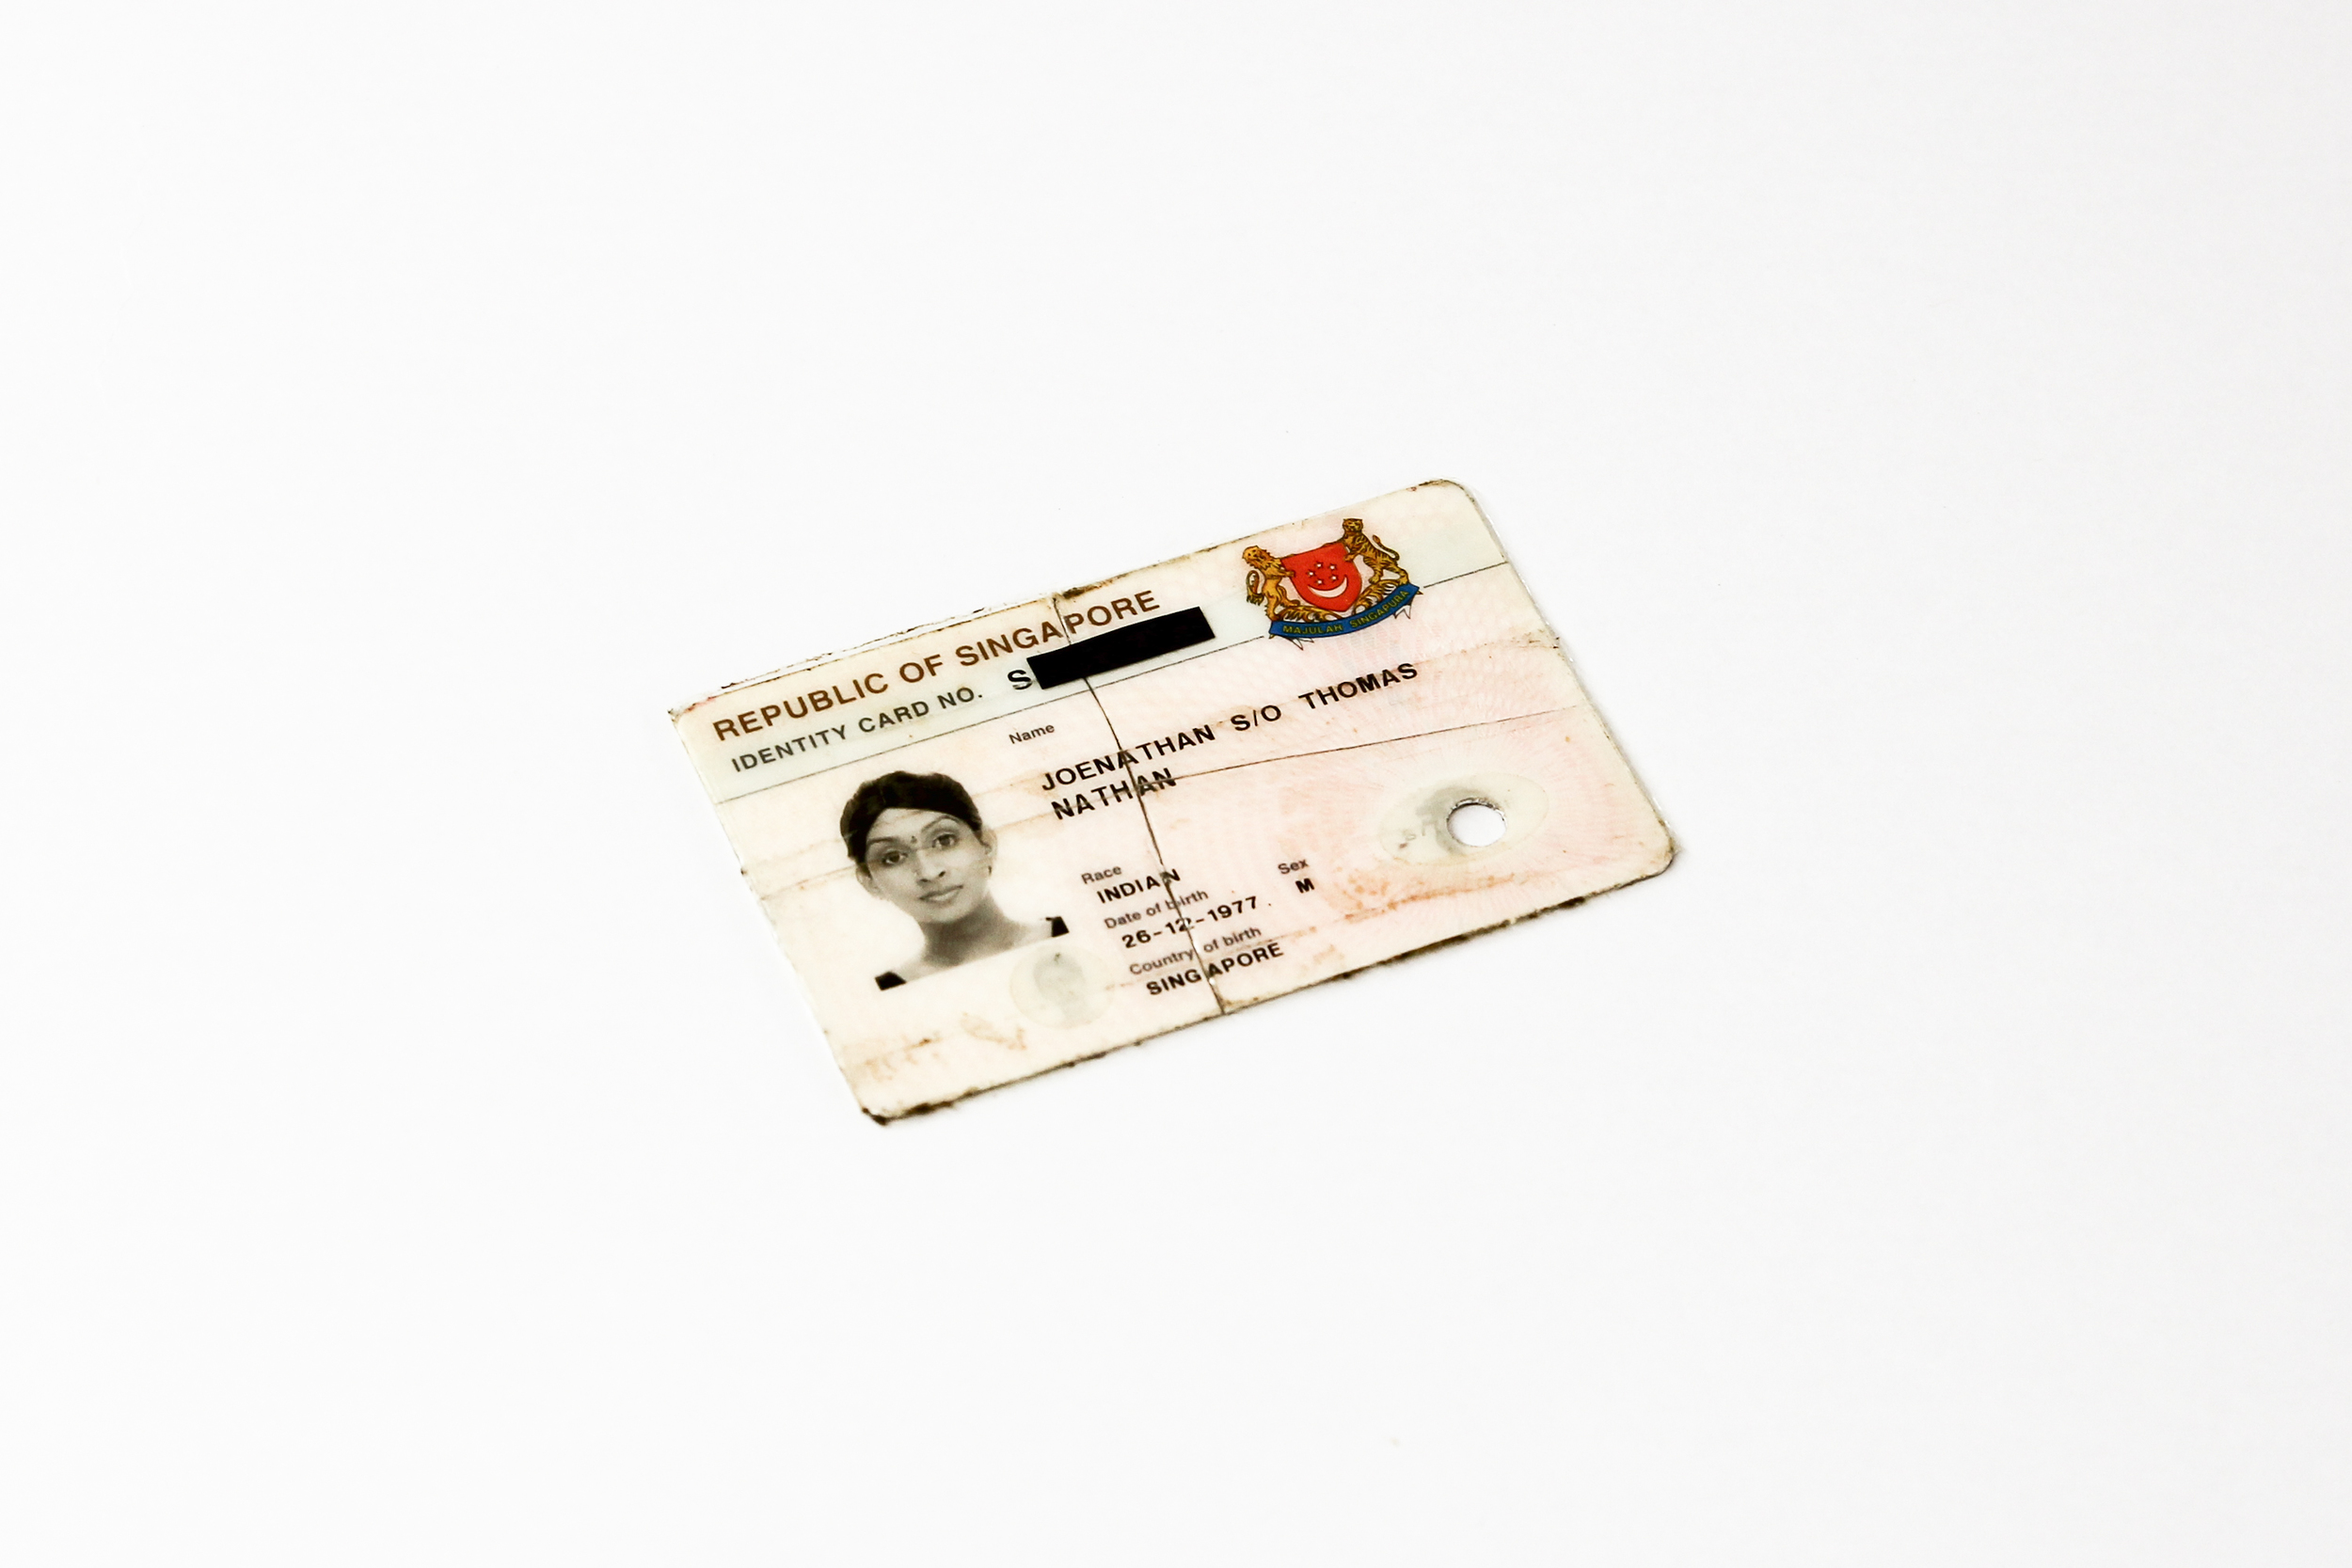 Voided identification card